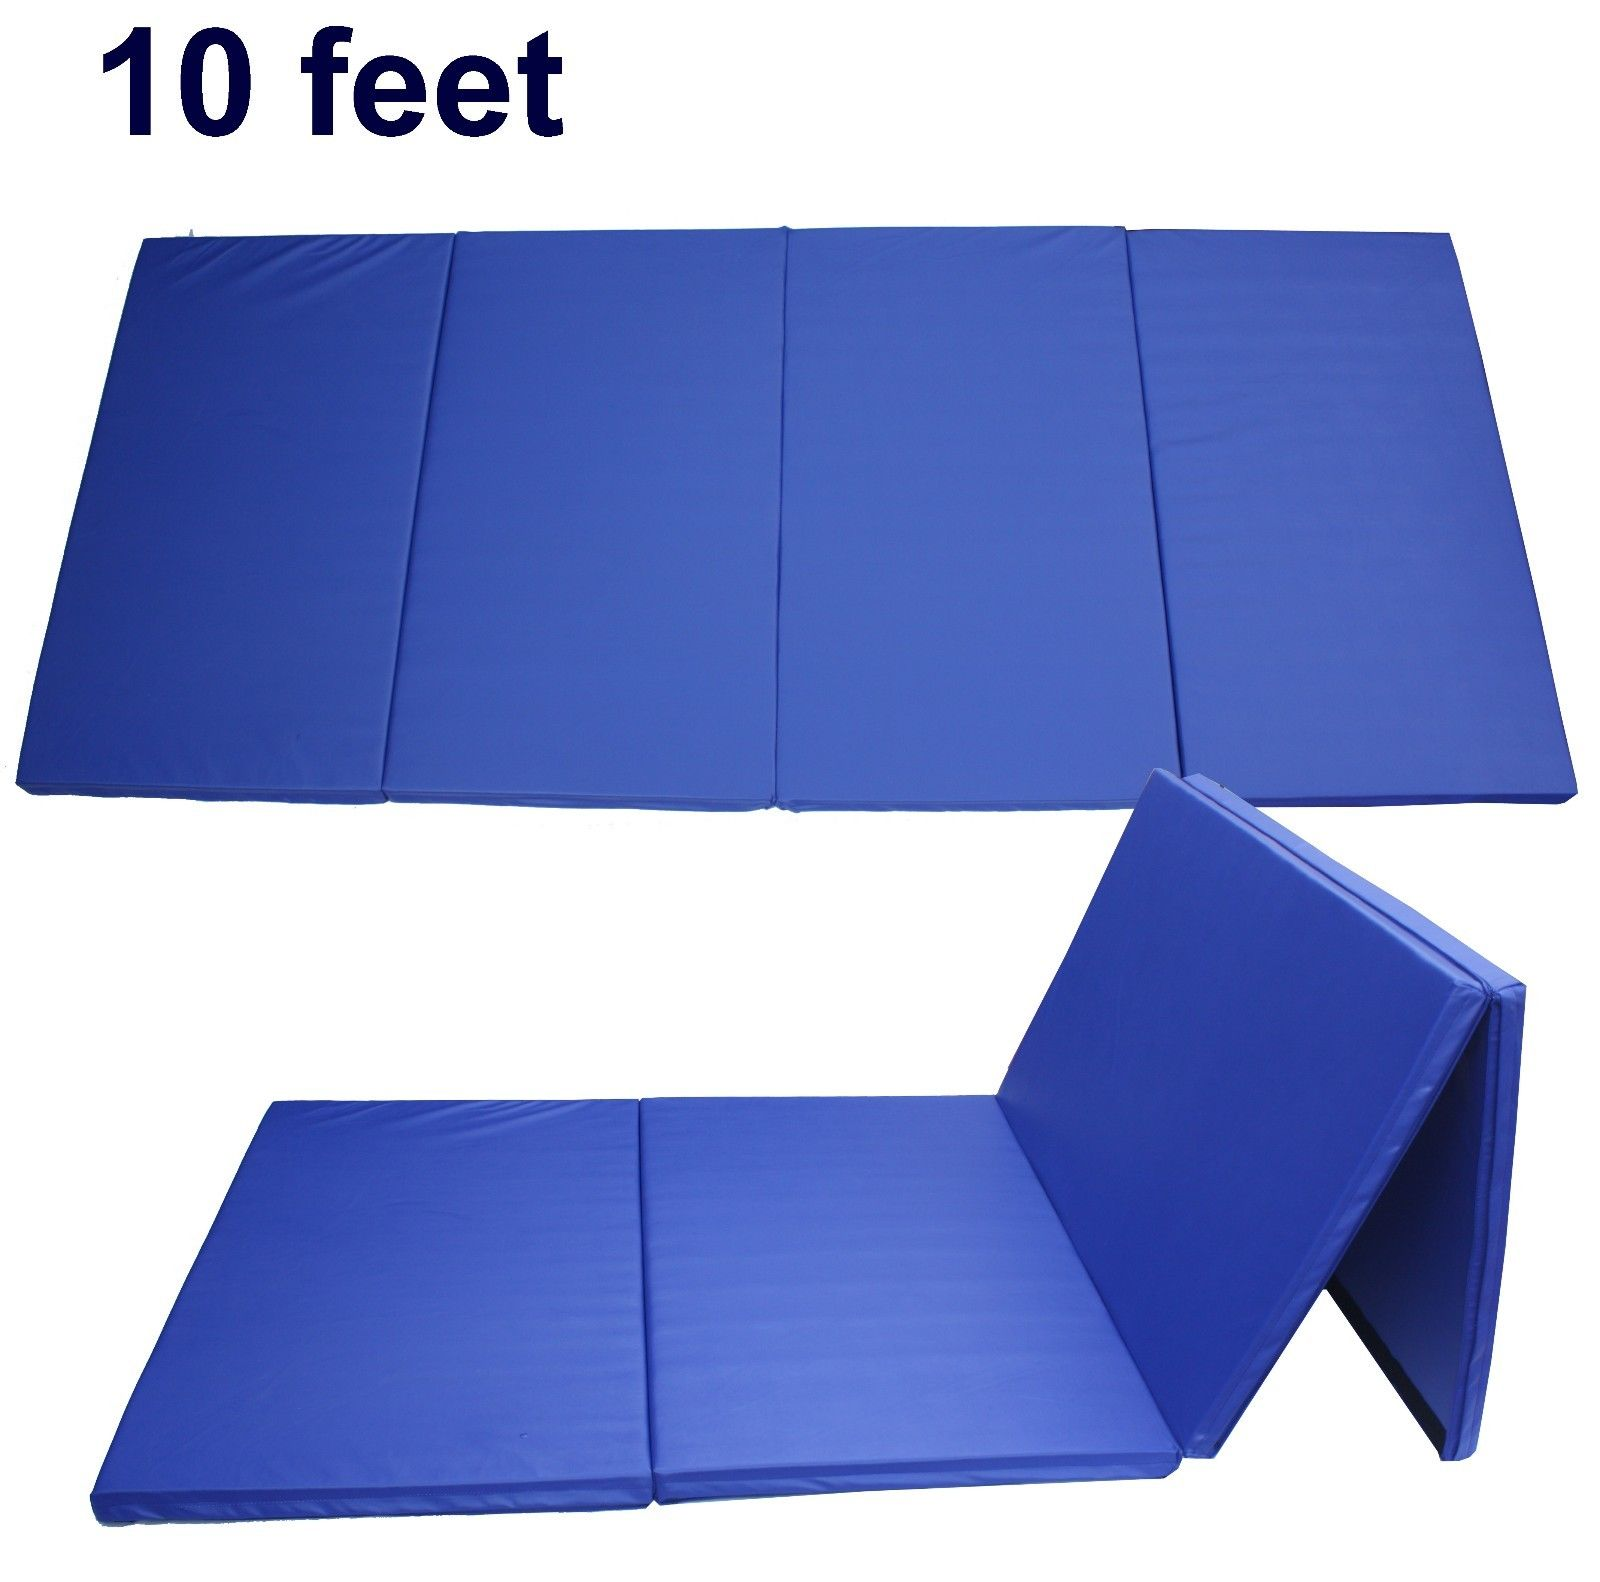 for gymnastics photo mats gymnastic thick com folding x costway purple panel mat walmart kathleensblogspot exercise at fitness of home pink gym